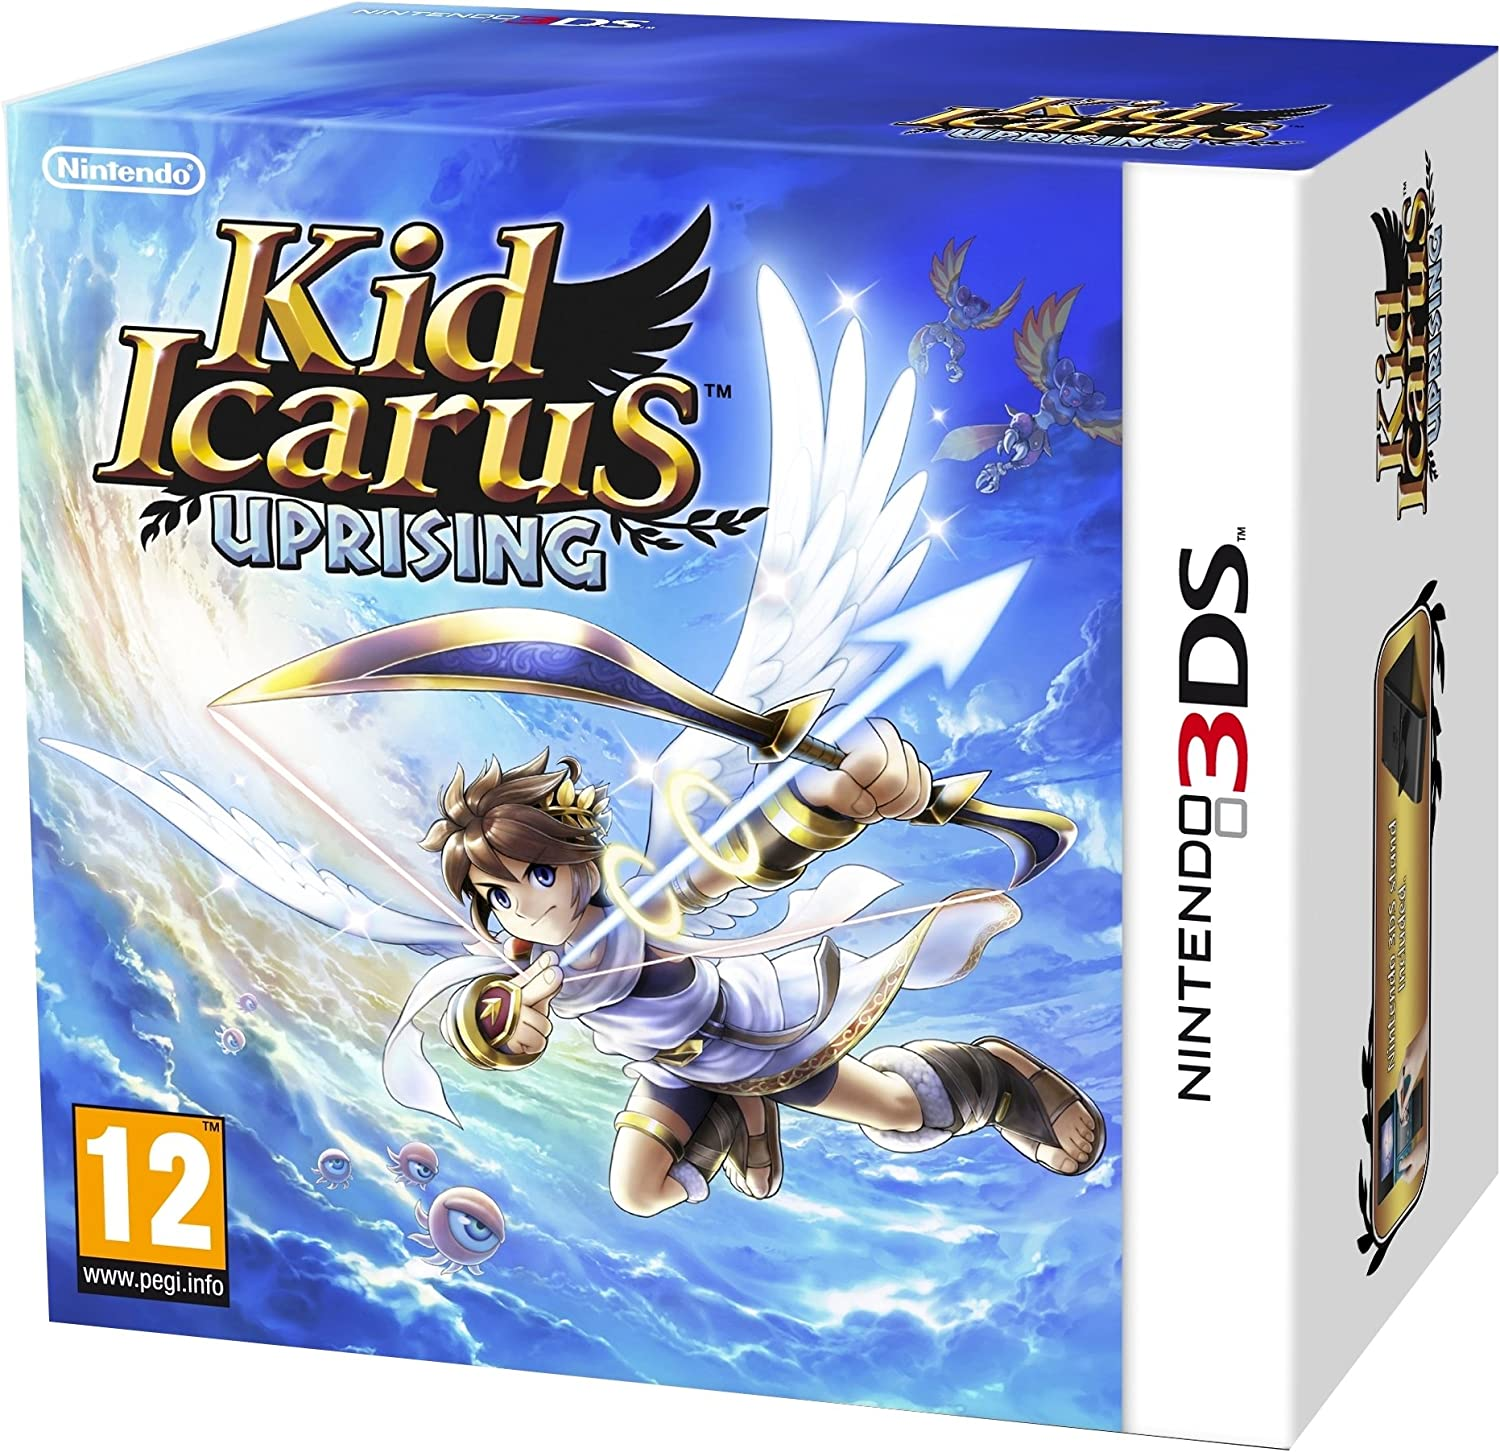 Kid Icarus: Purchase Uprising New sales